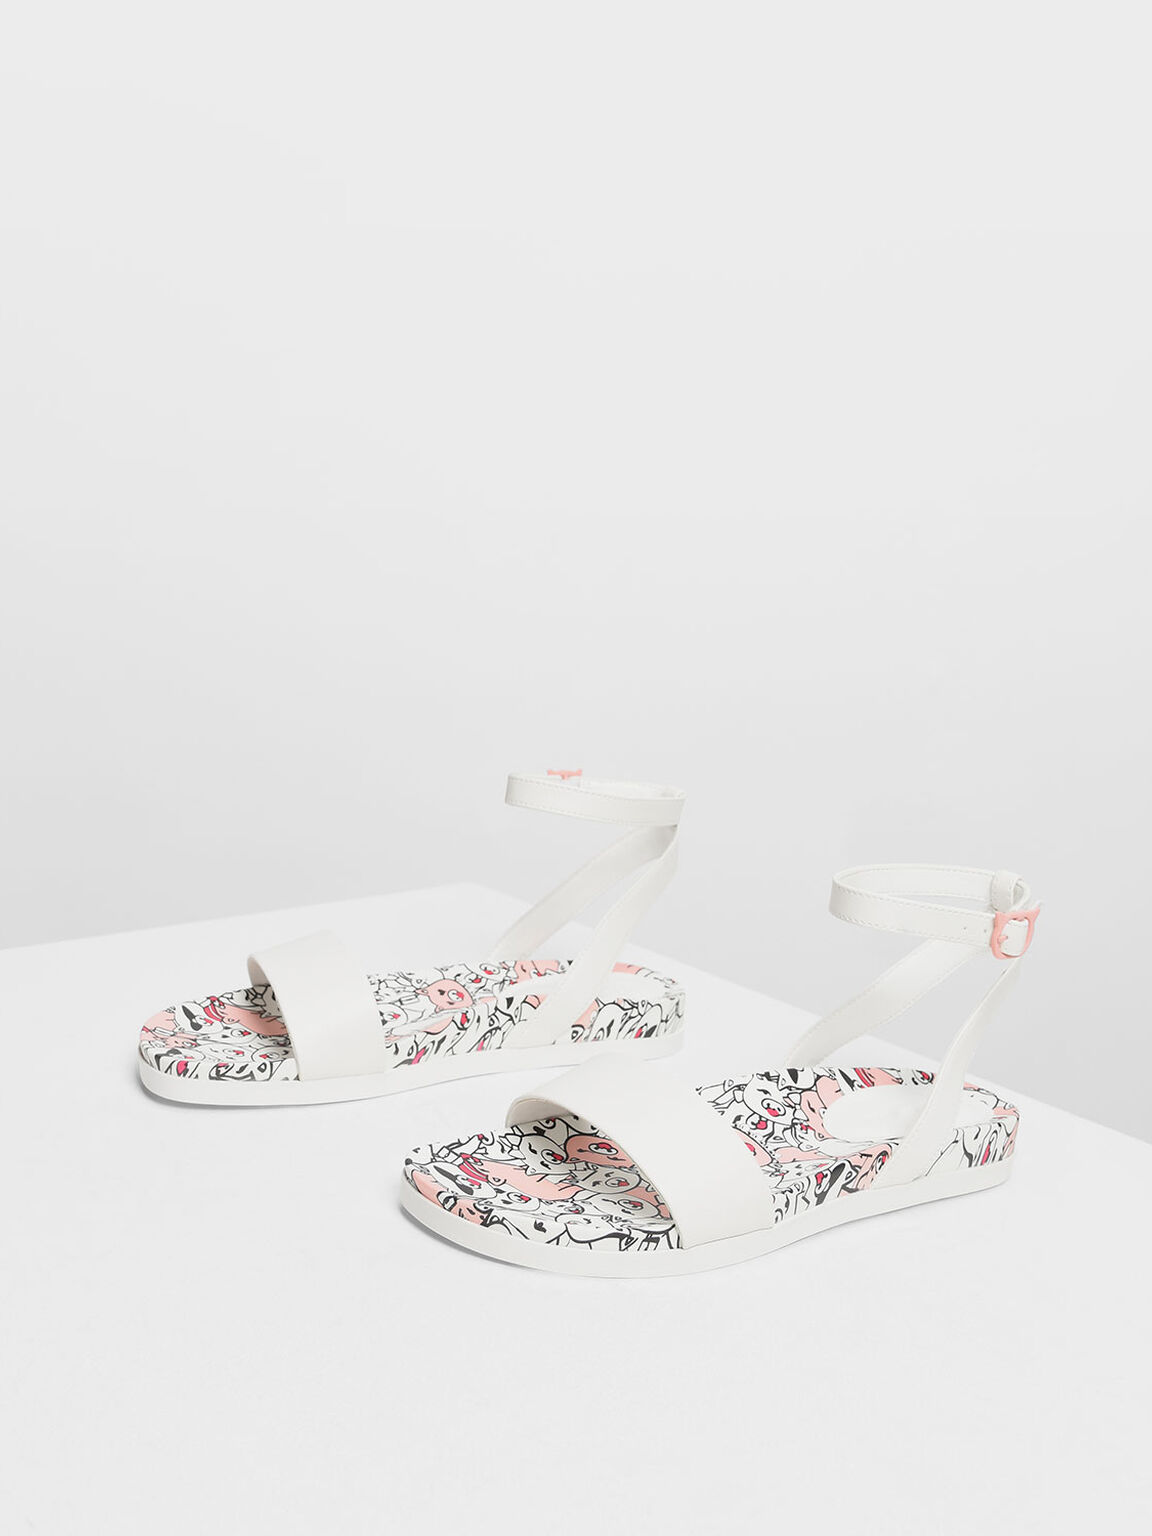 Zodiac Pig Sandals, White, hi-res